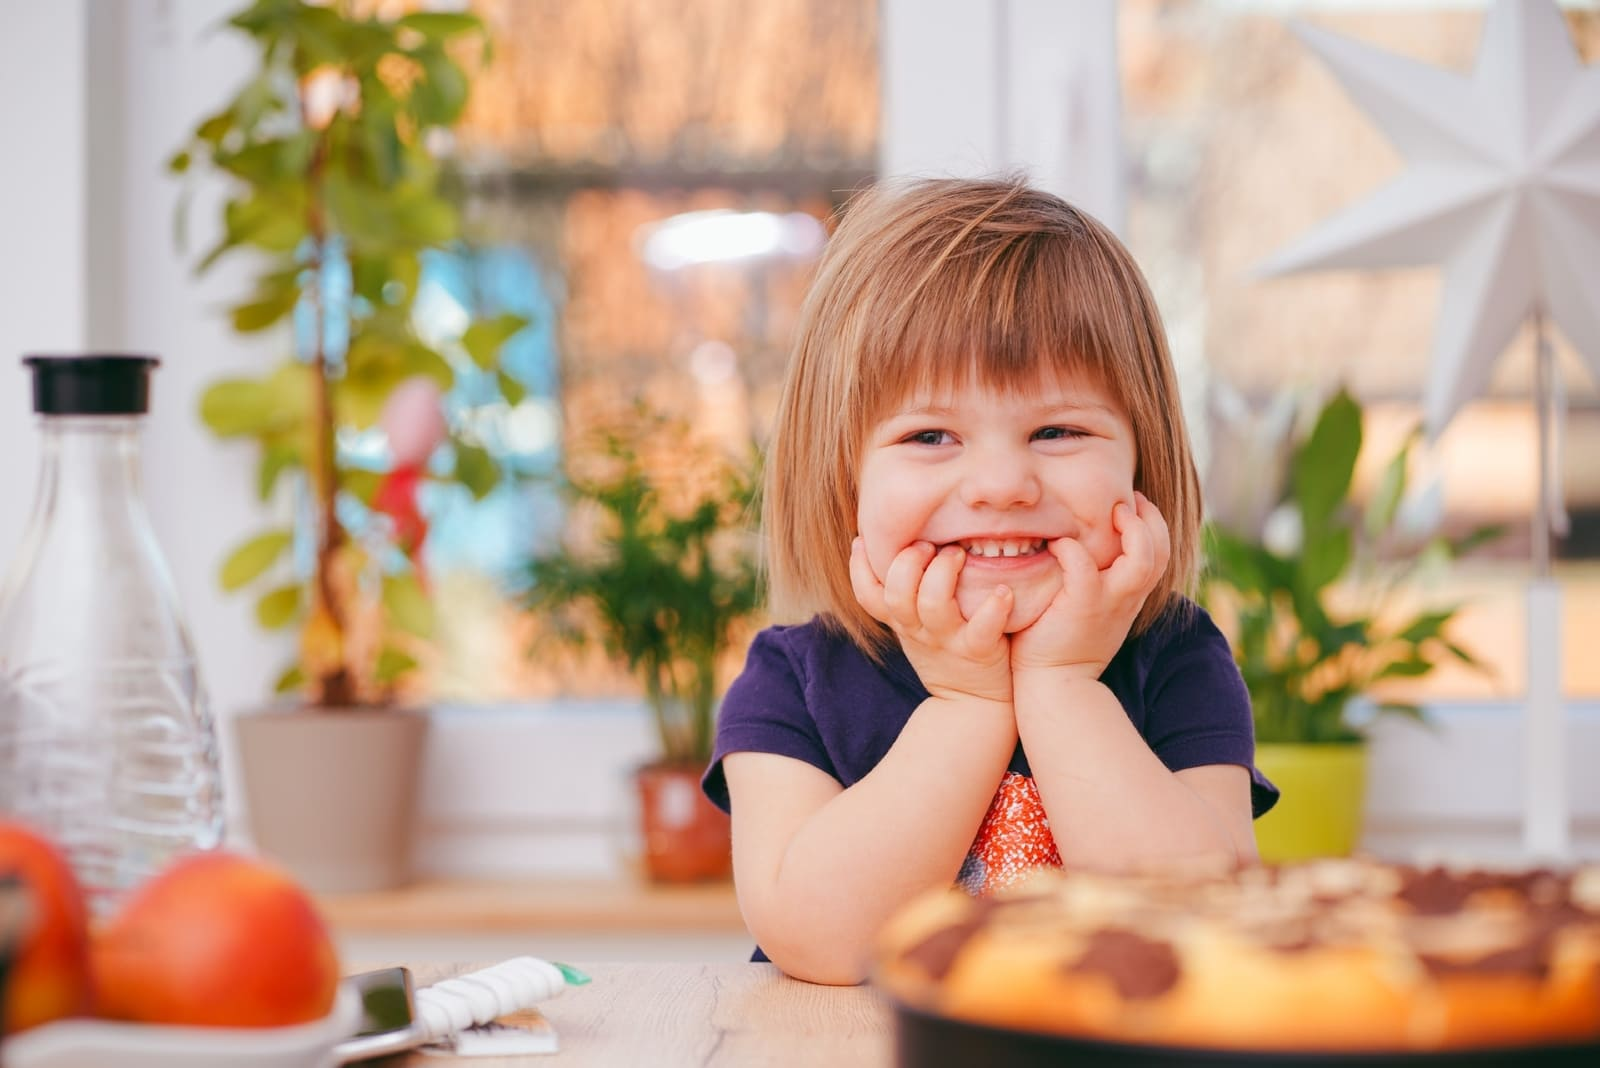 toddler smiling while sitting at table